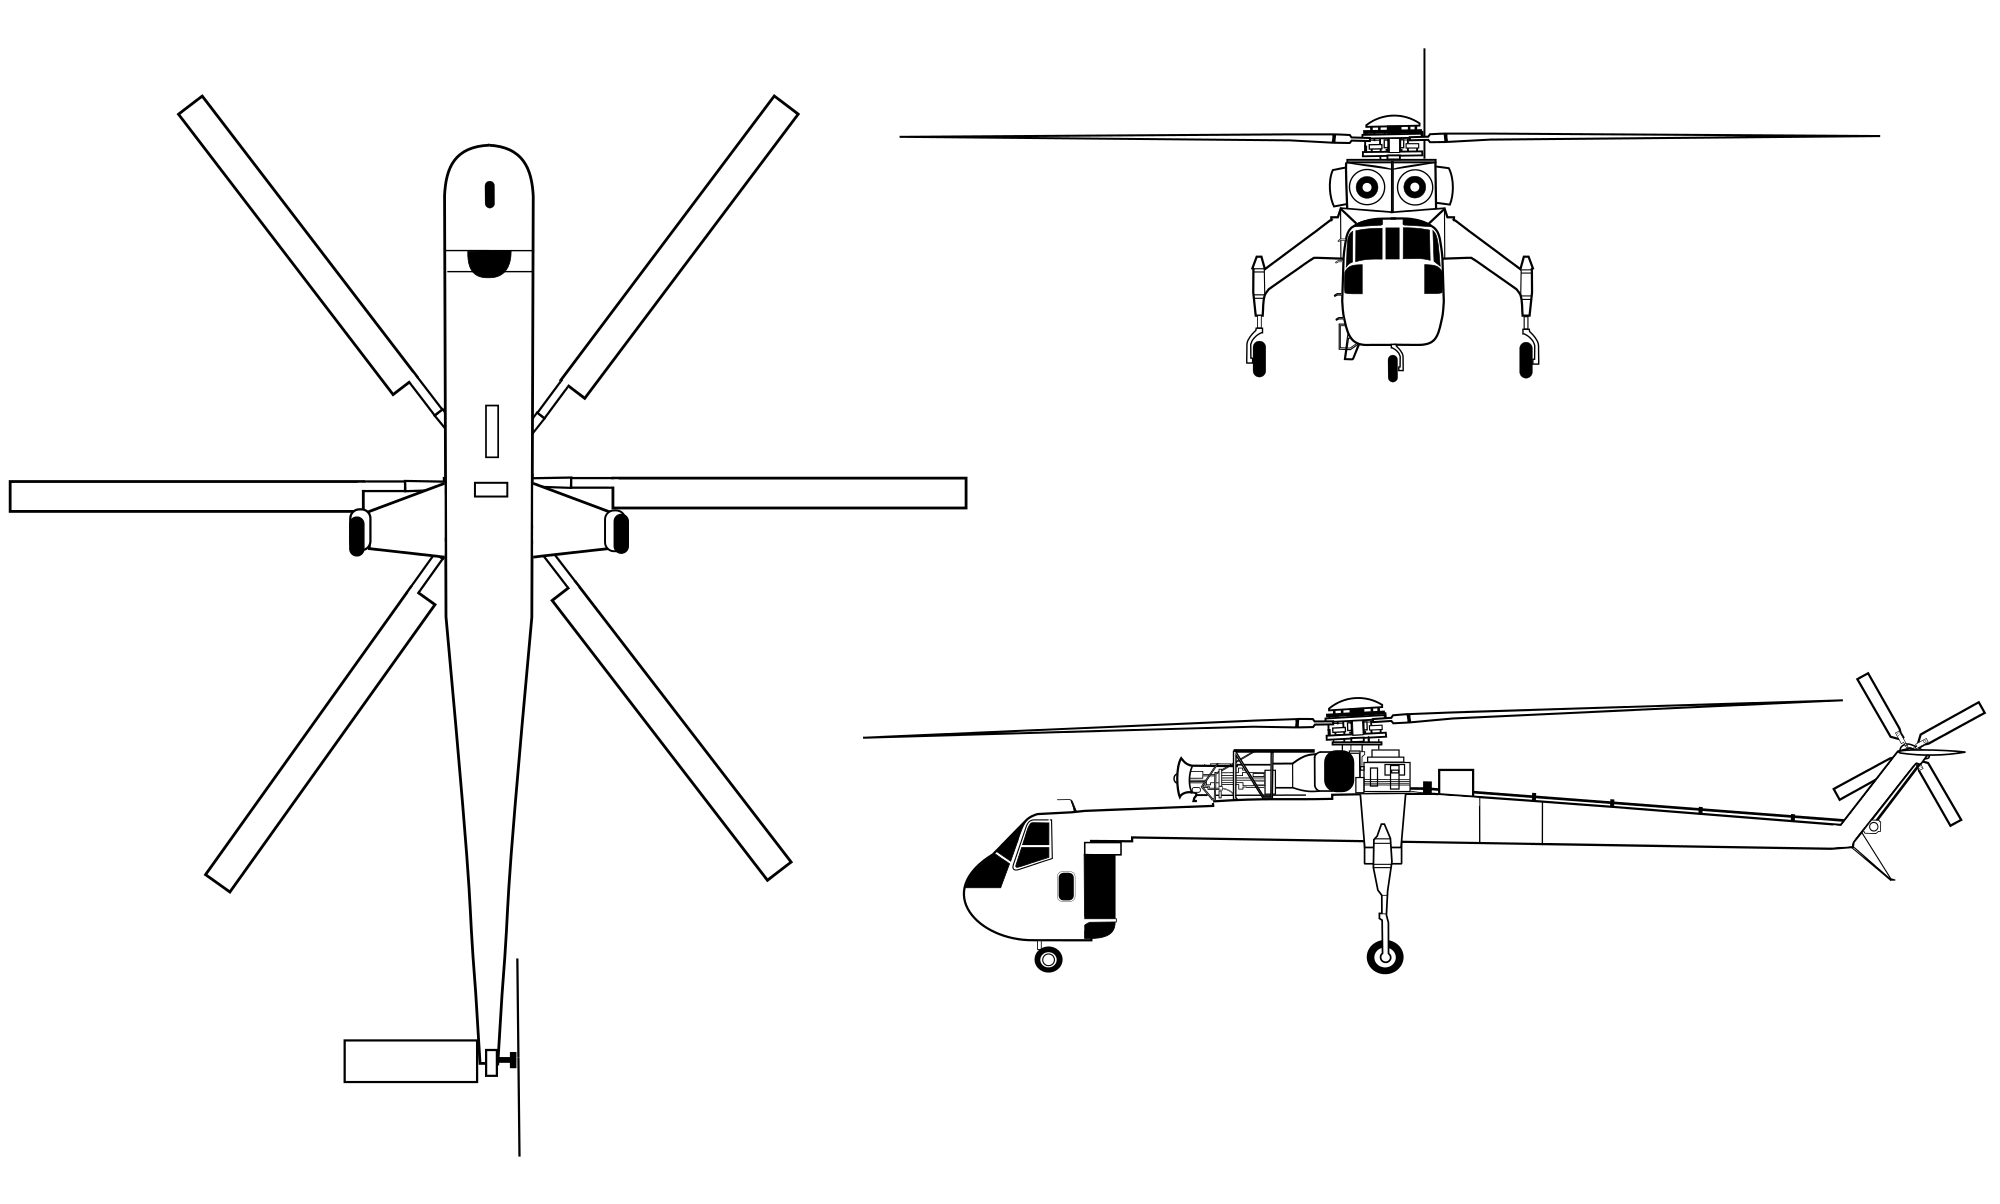 S-64 Skycrane blueprint